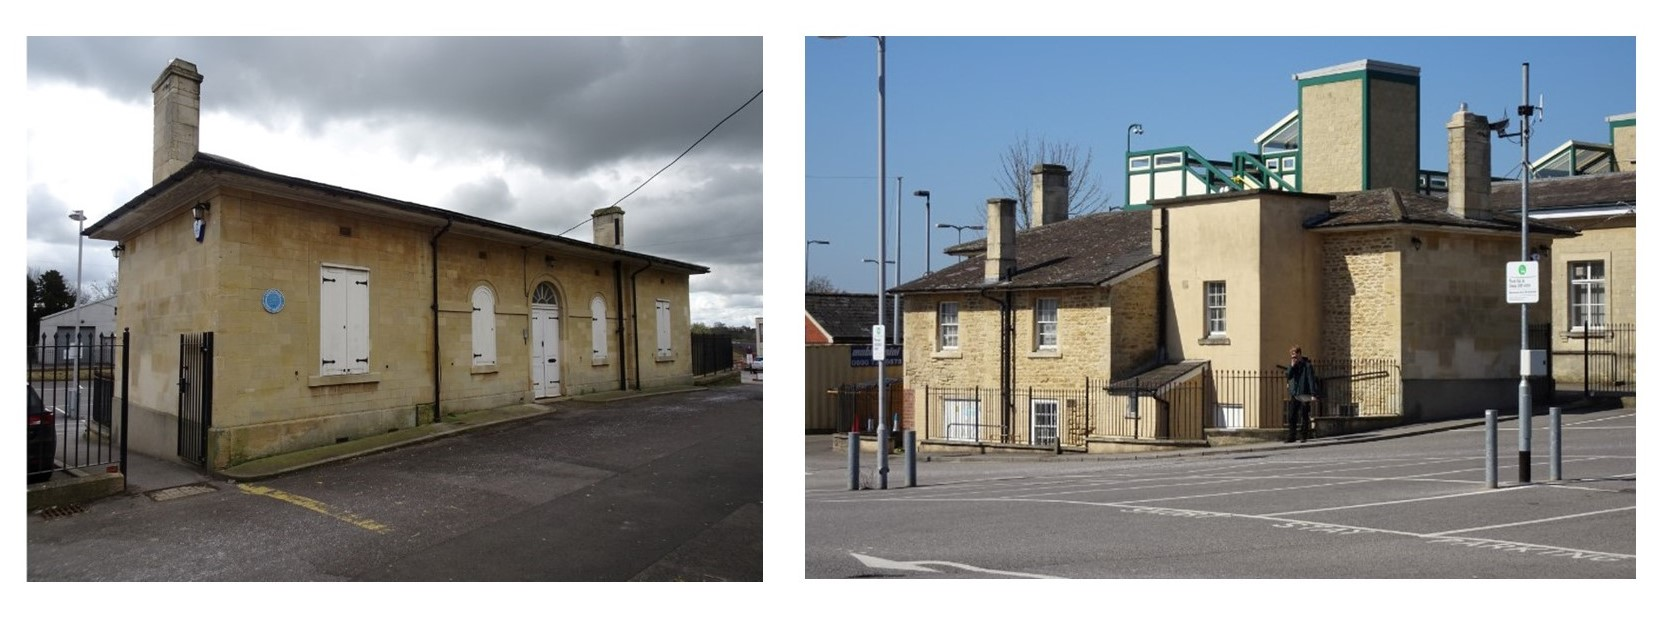 two views of brunel's office, showing the front and back